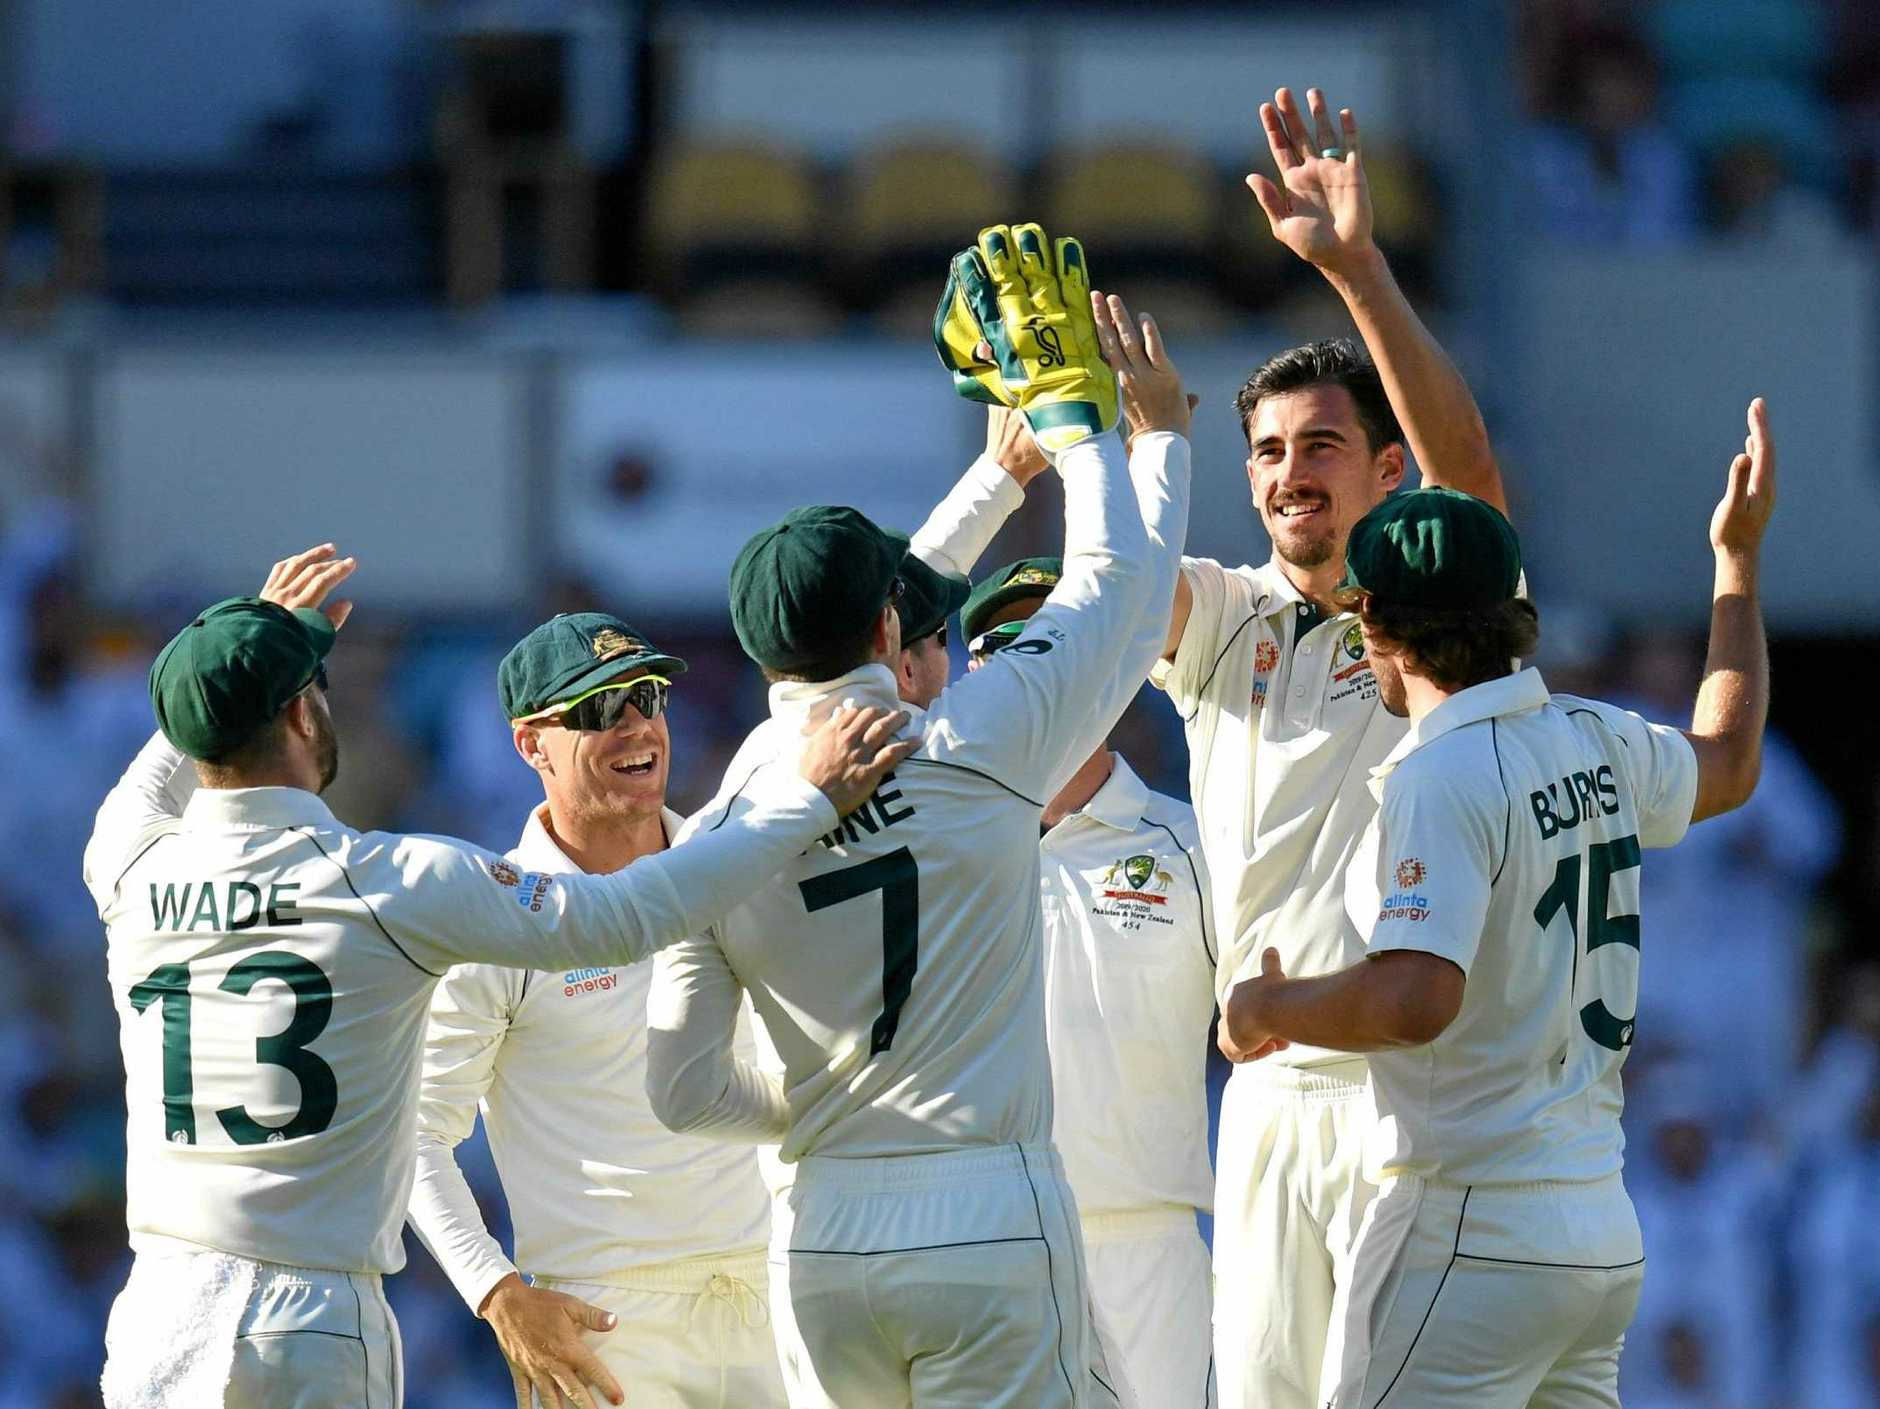 Mitchell Starc celebrates with teammates after getting the wicket of Haris Sohail at the Gabba on Saturday. Picture: Darren England/AAP